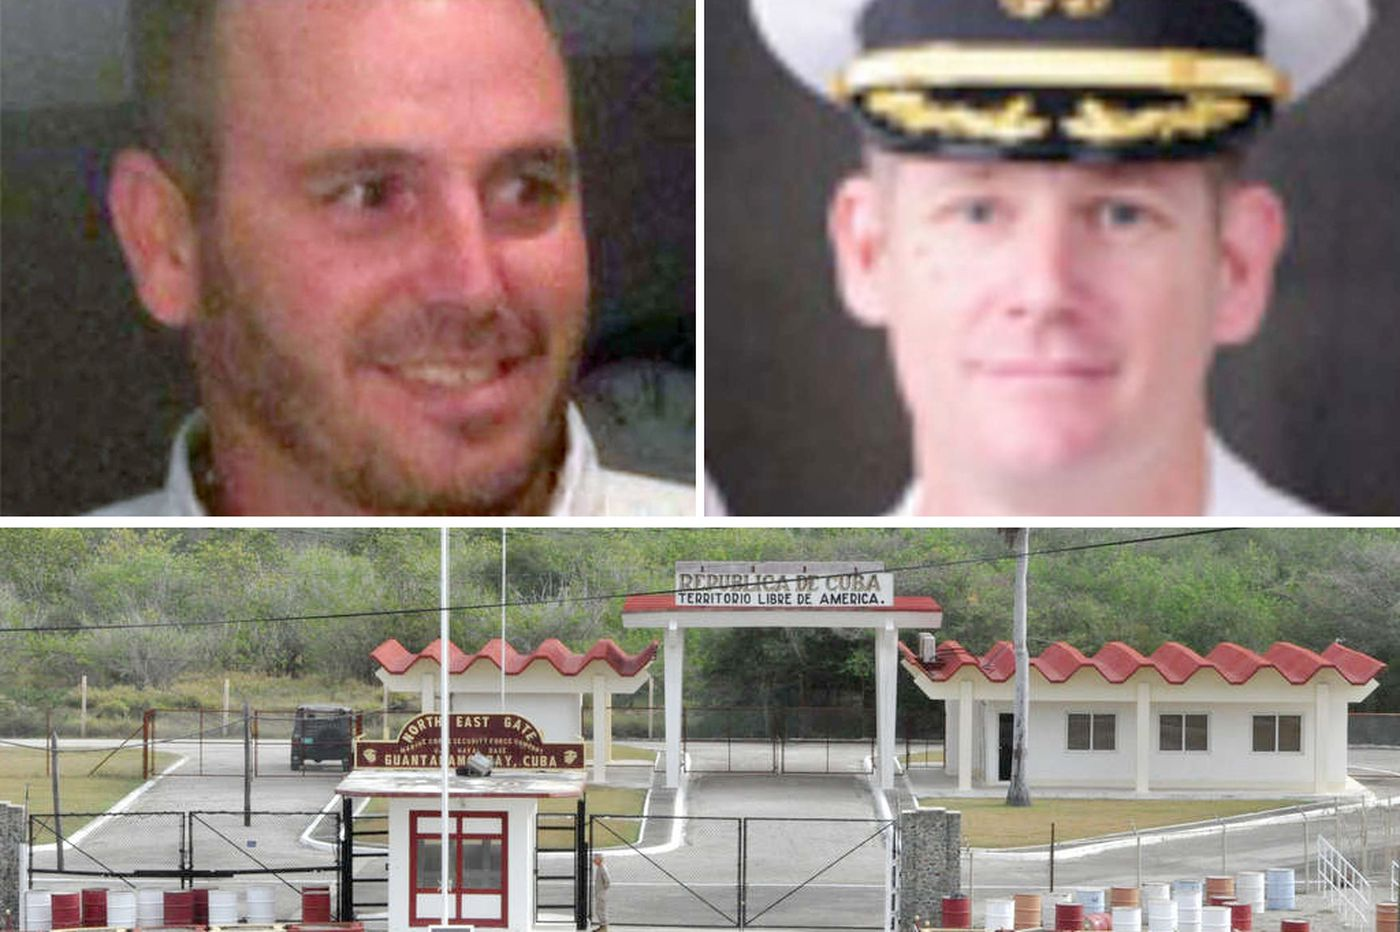 Arrest made in connection with death of Montco native at U.S. Navy base in Cuba